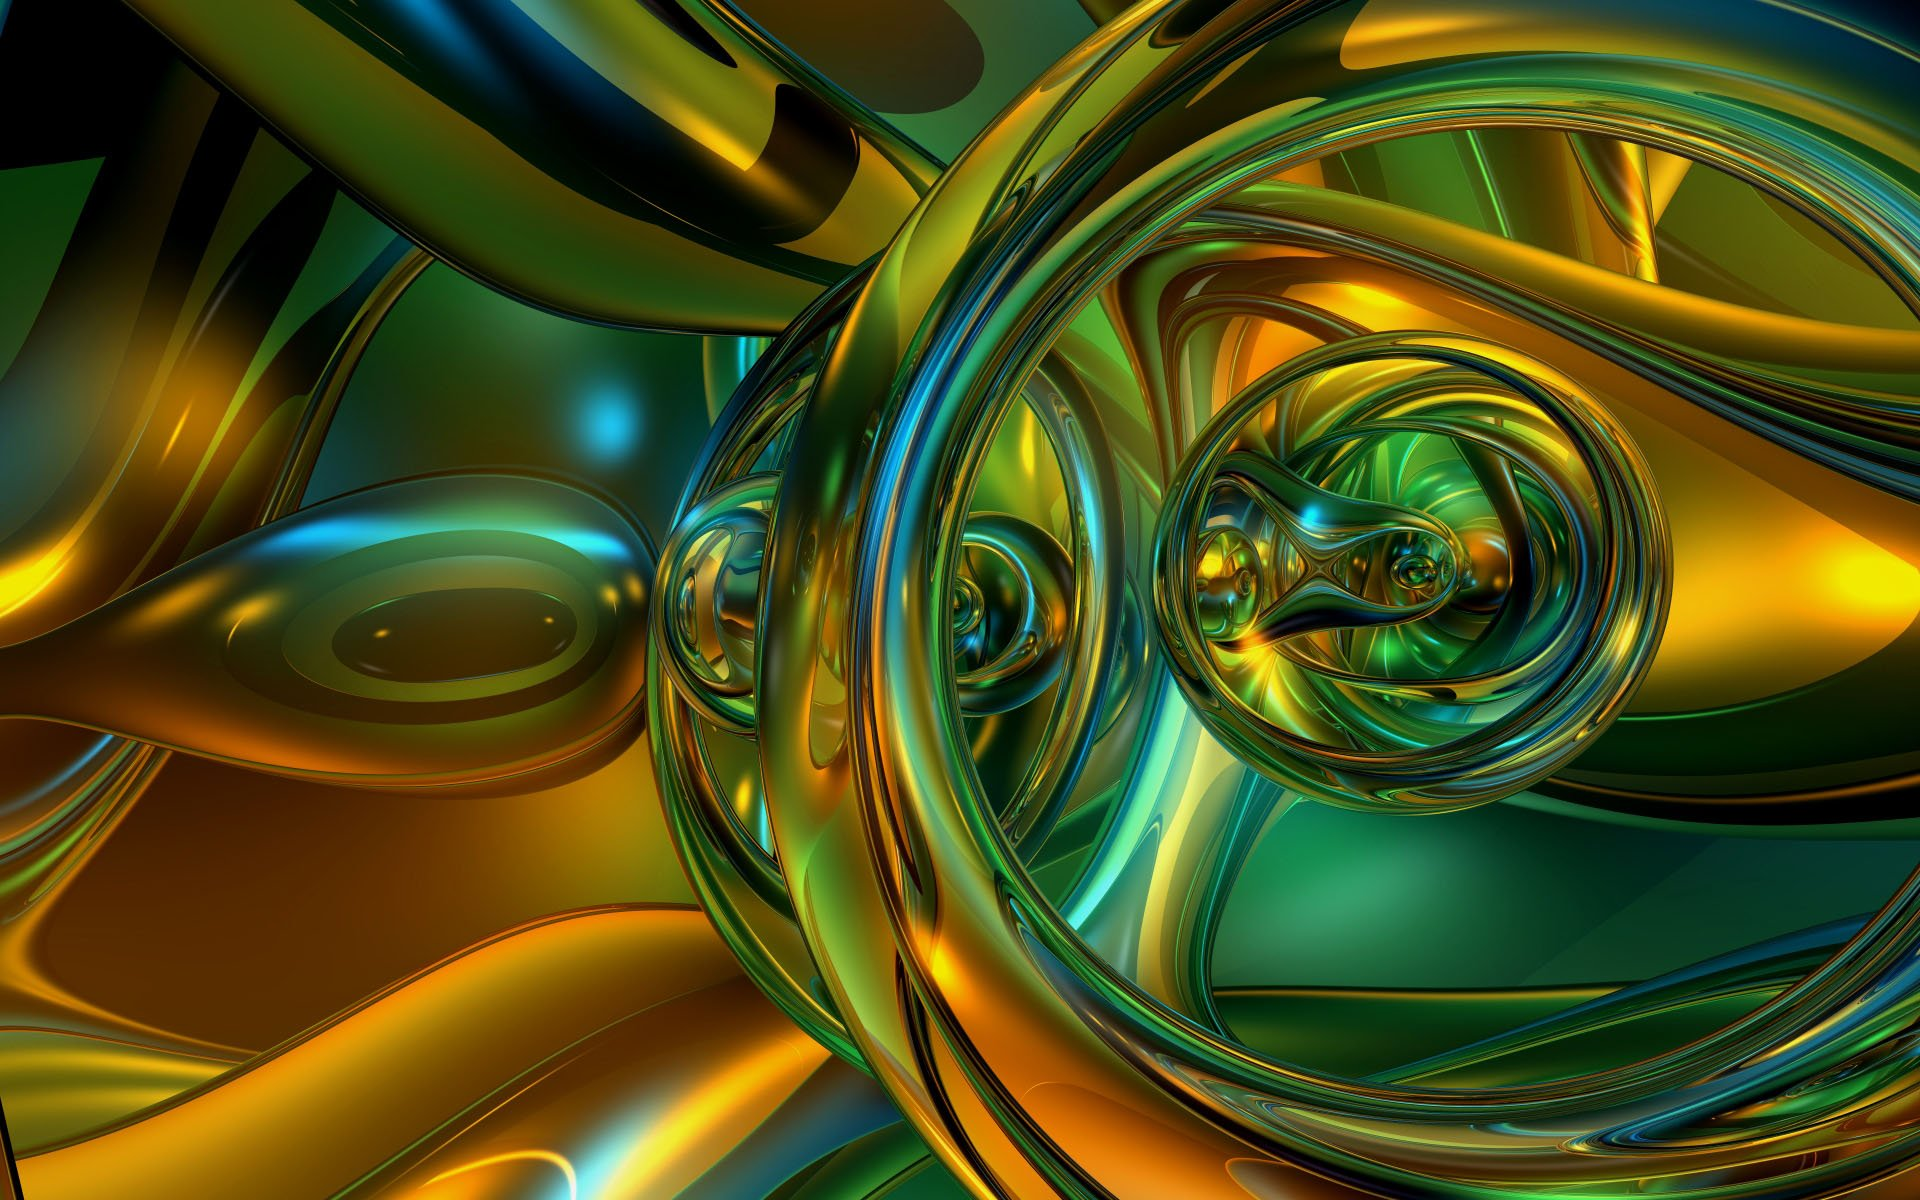 Wallpaper   Wallpaper abstract 3d animaatjes 27 1920x1200